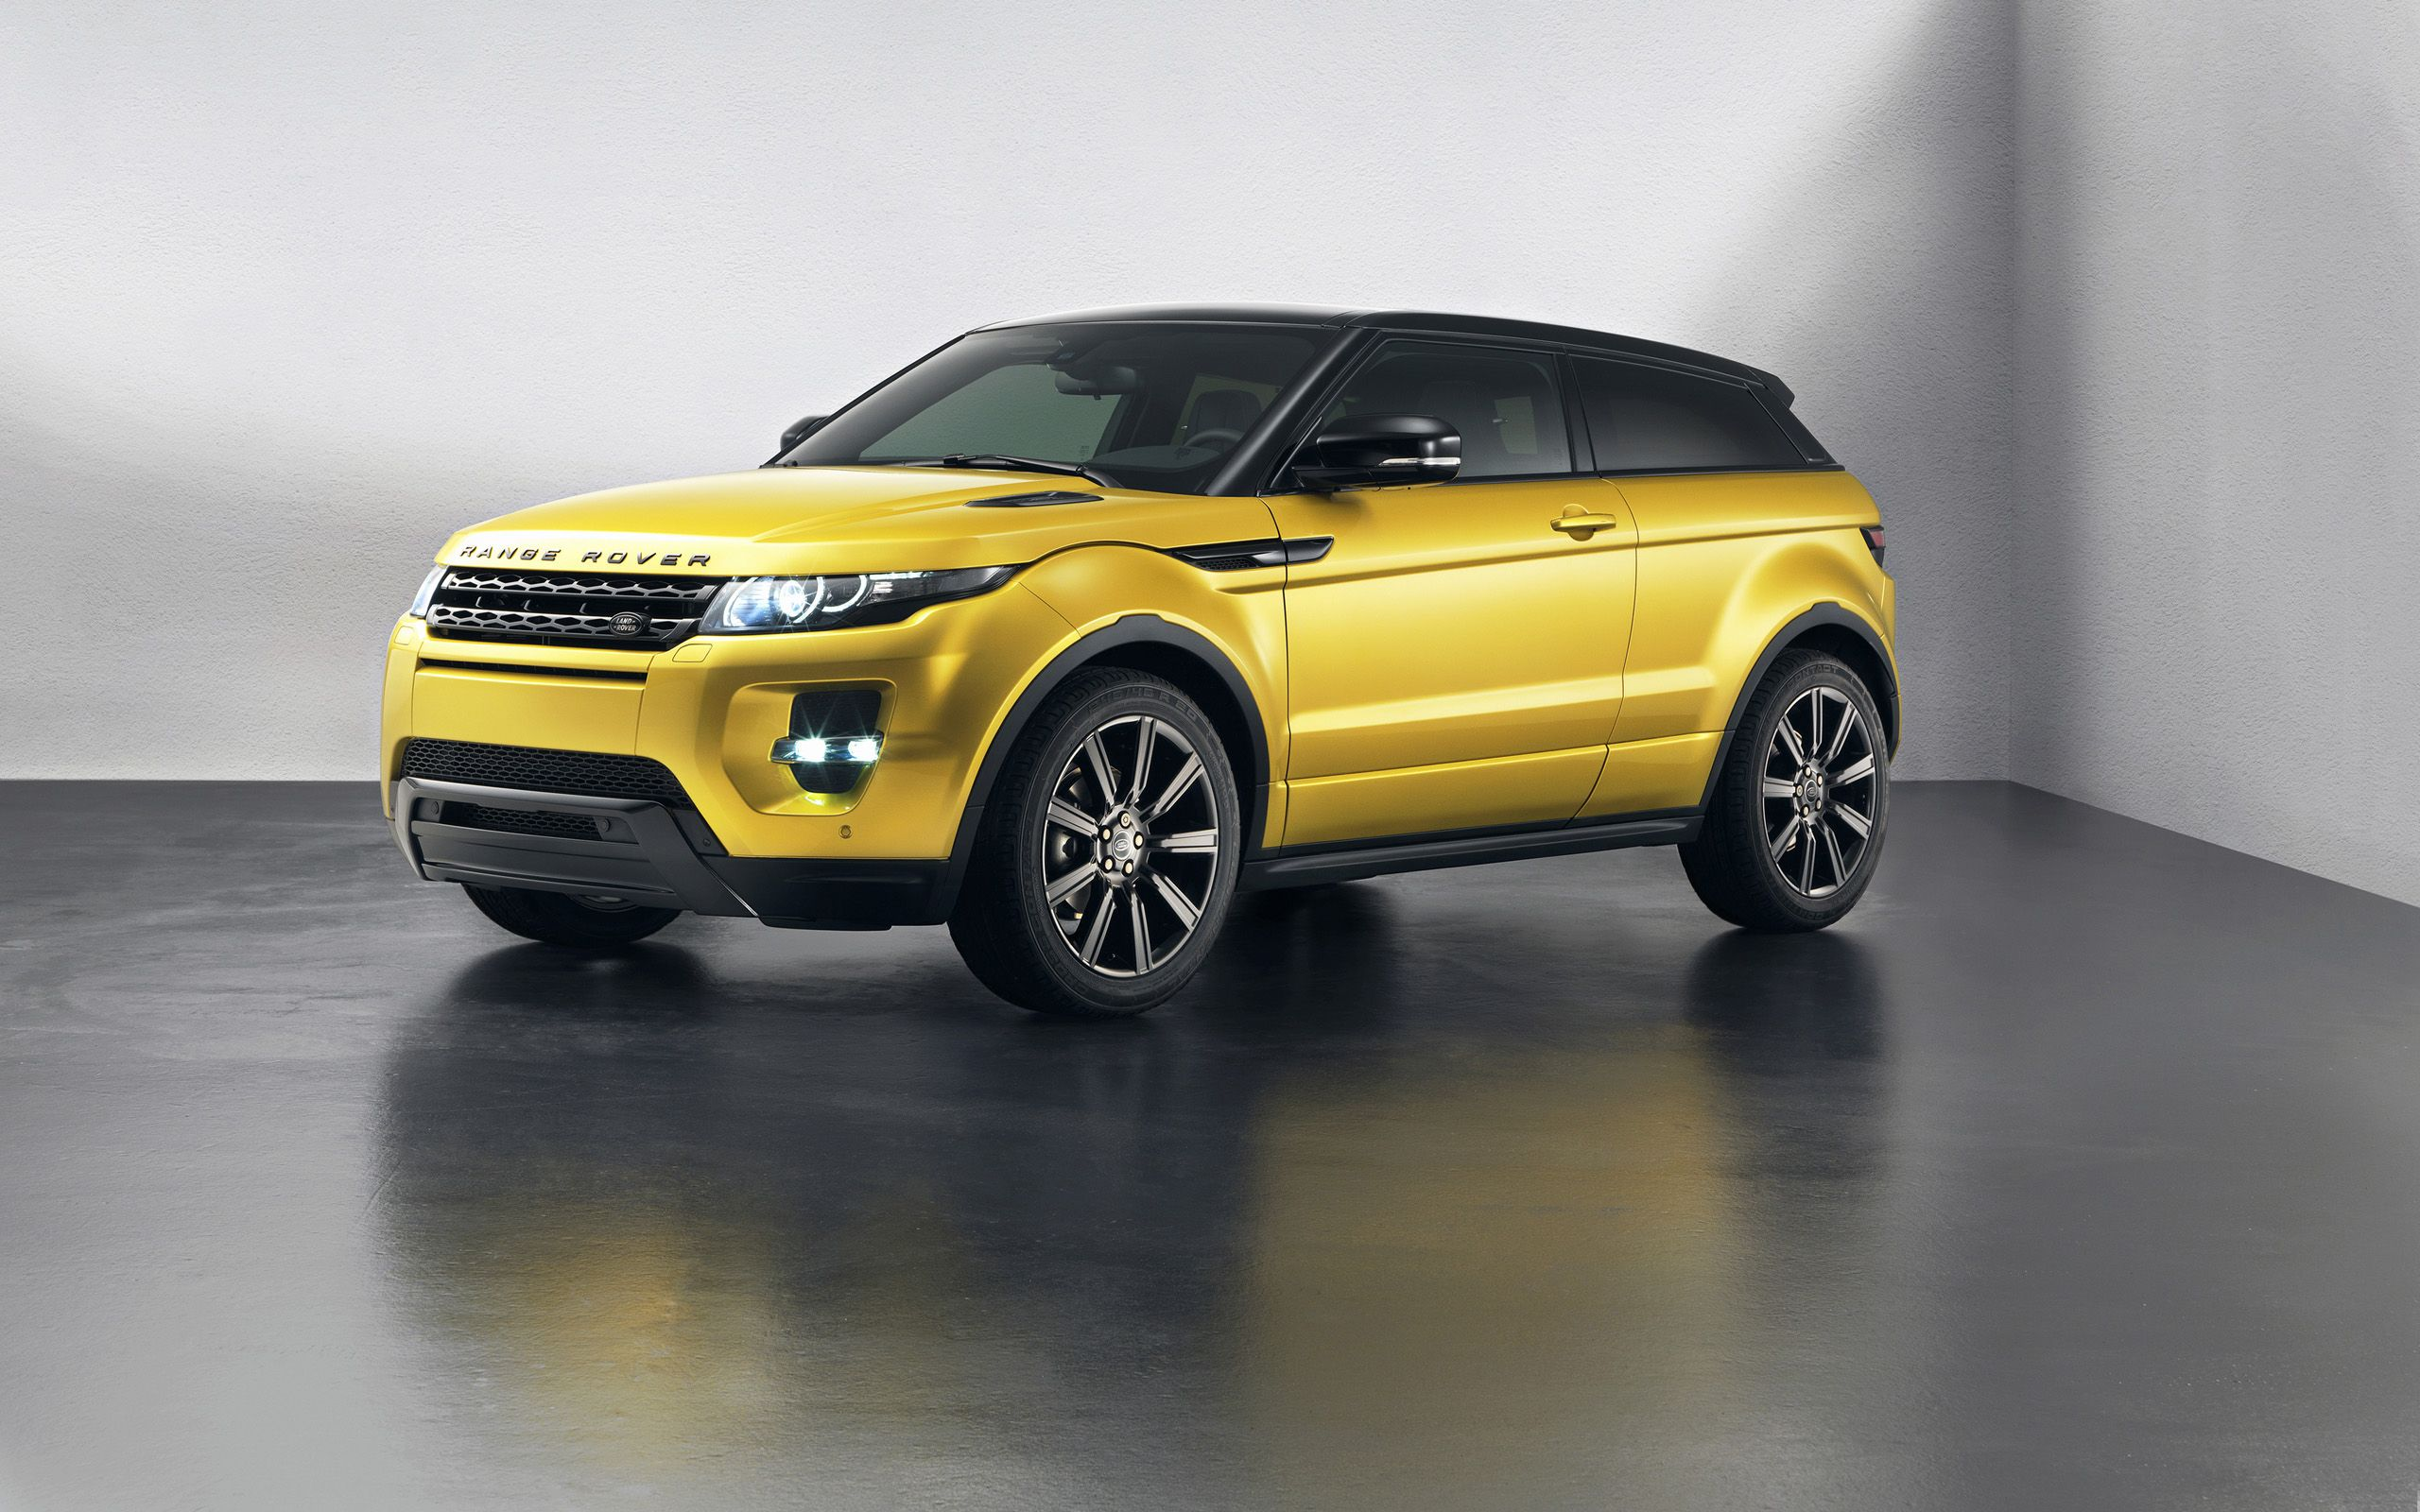 Wallpapers of range rover evoque http hdcarwallfx com wallpapers of range rover evoque cool car wallpapers pinterest car wallpapers range rovers